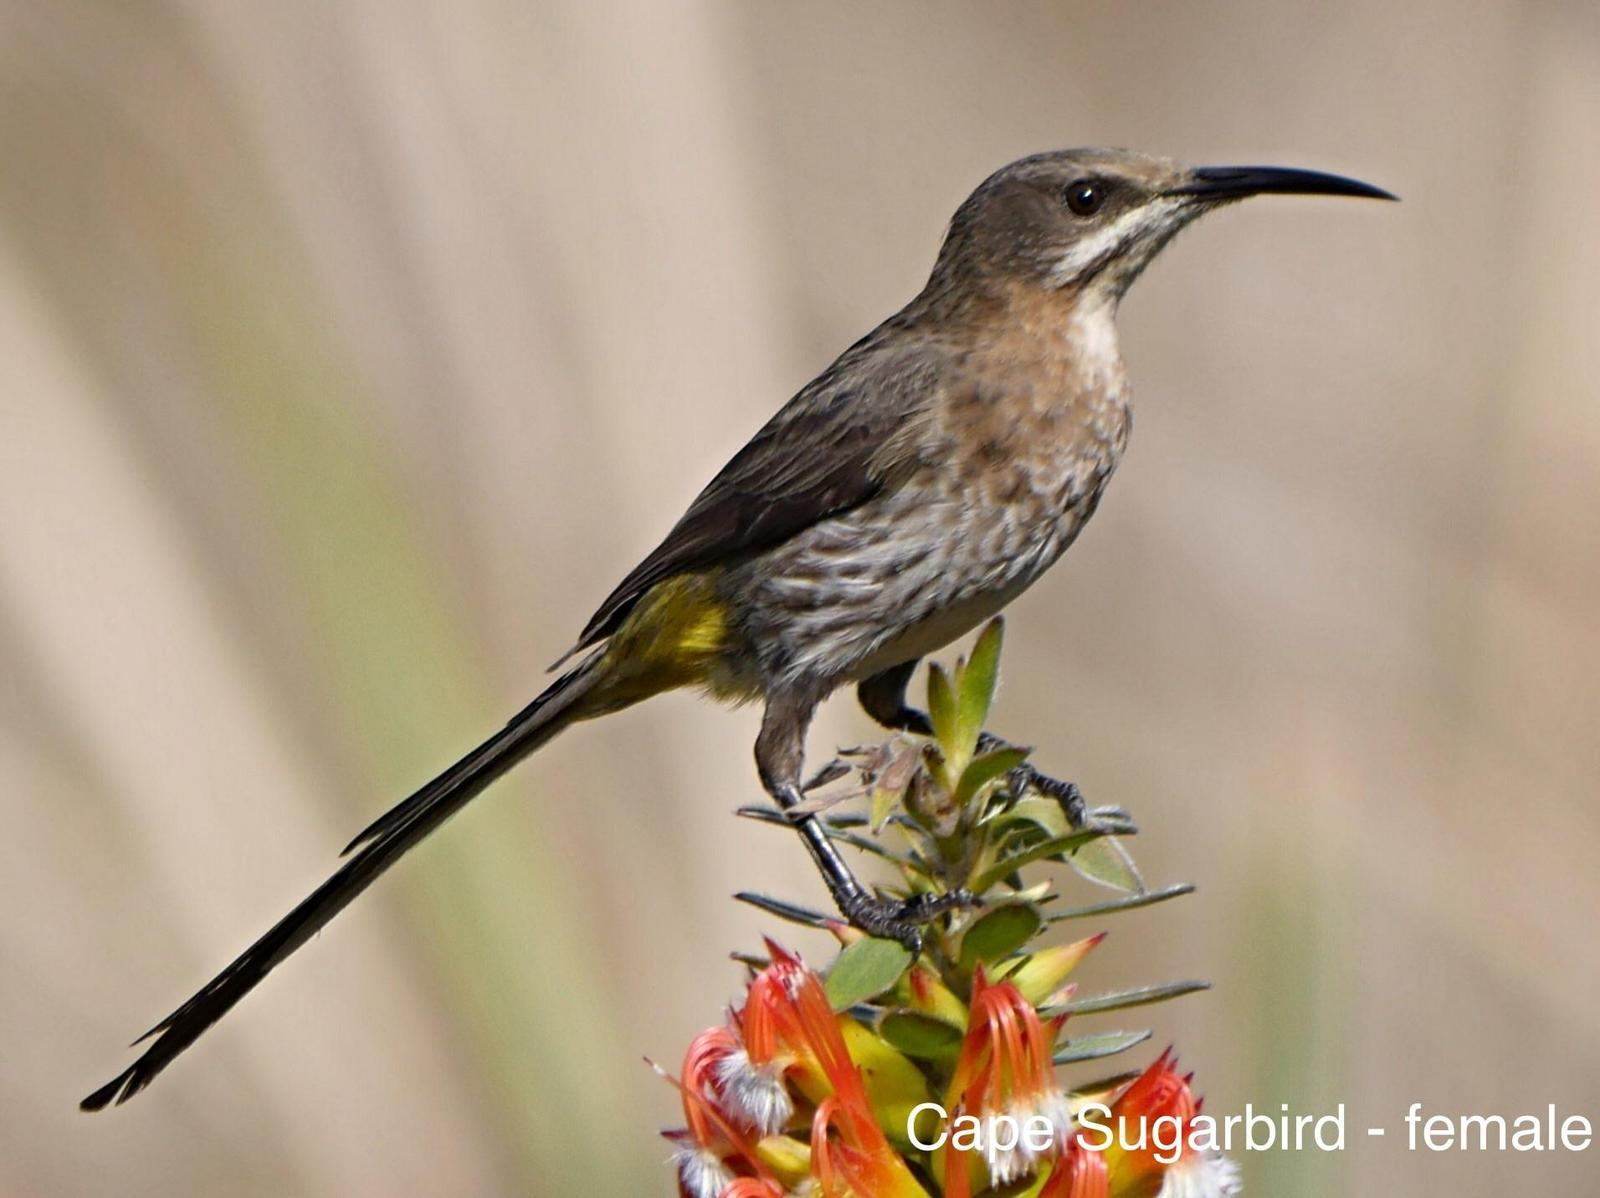 Cape Sugarbird Photo by Peter Lowe